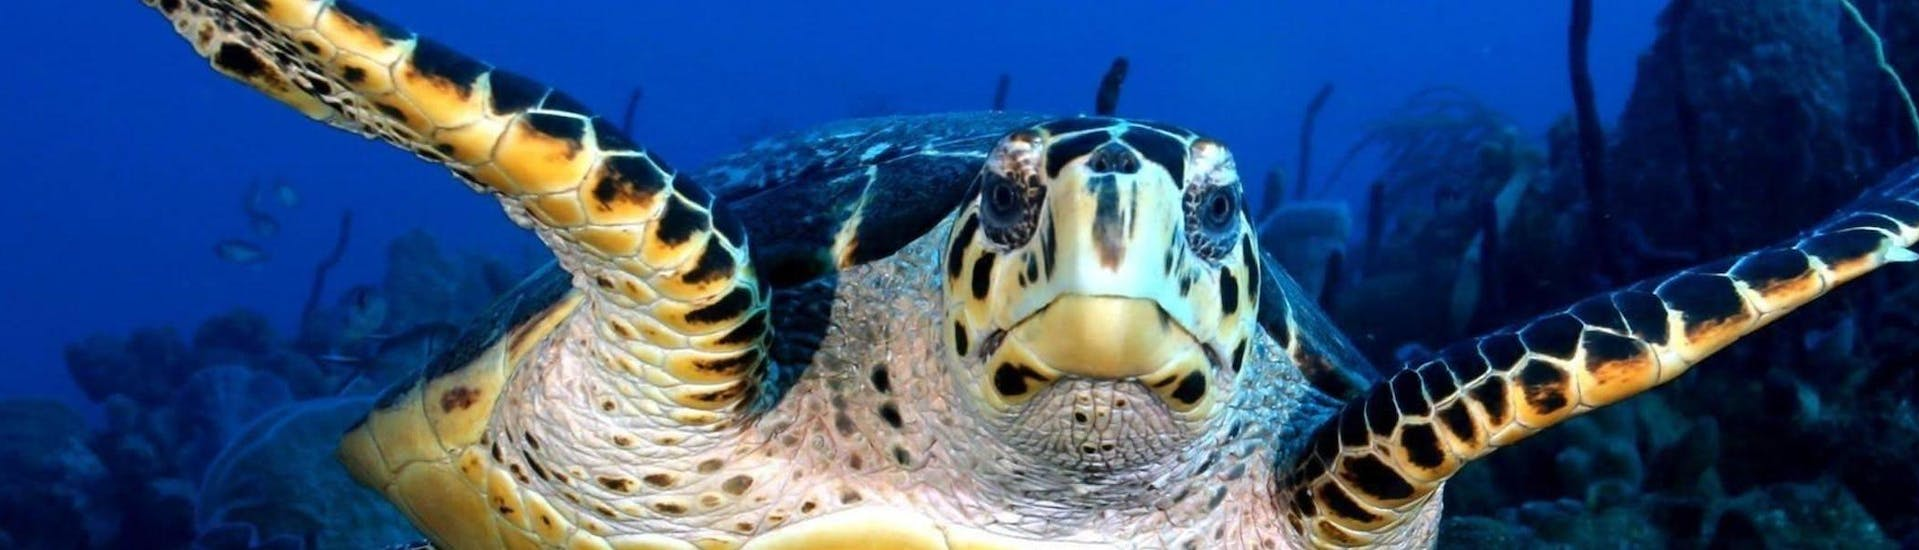 A turtle is pictured during Night Scuba Diving in Réserve Cousteau for Certified Divers with Les Heures Saines Guadeloupe.